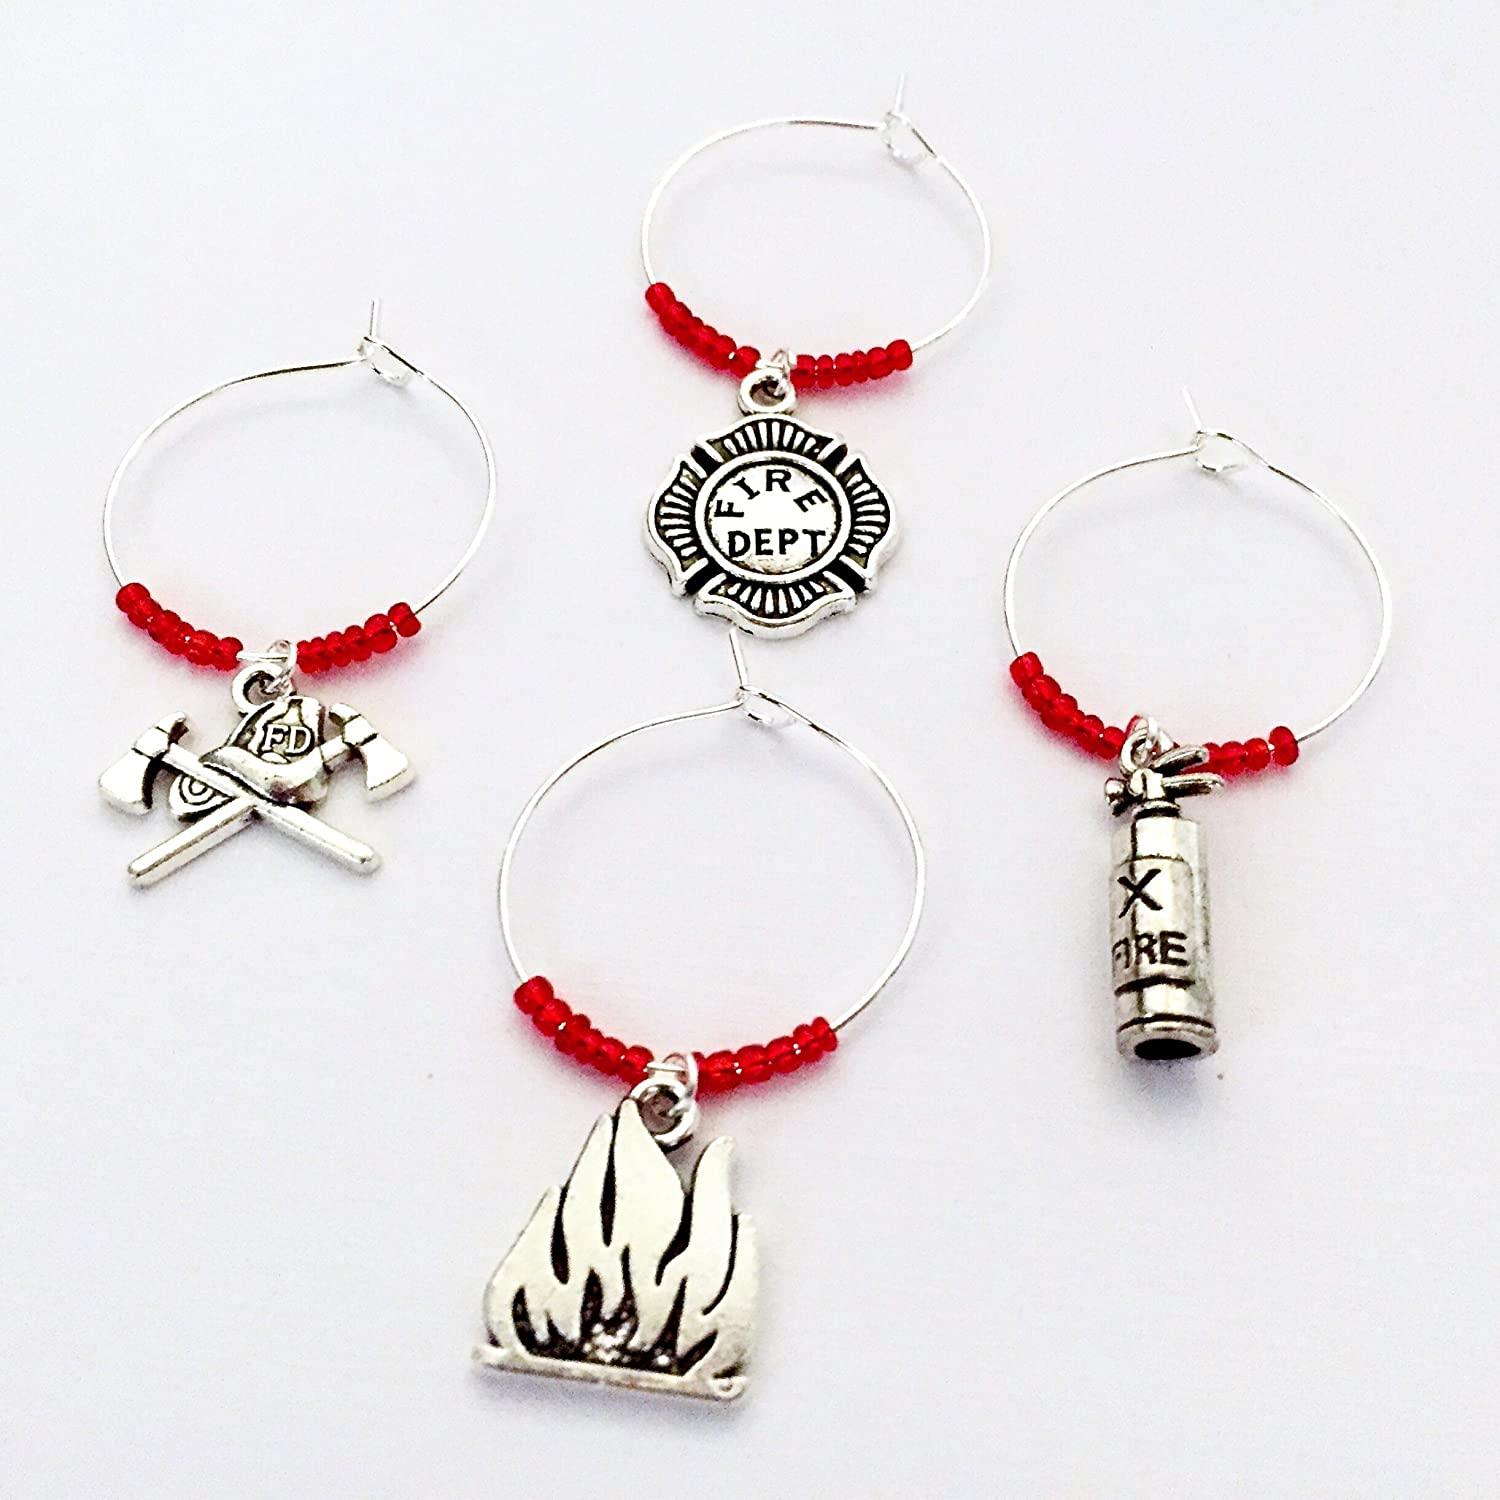 Firefighter themed Wine Charms, wine gift for fire fighter. Includes Helmet and Axe, Fire Dept Emblem, Flame, Fire Extinguisher, and Hydrant. Set of 5. RED BEADS.